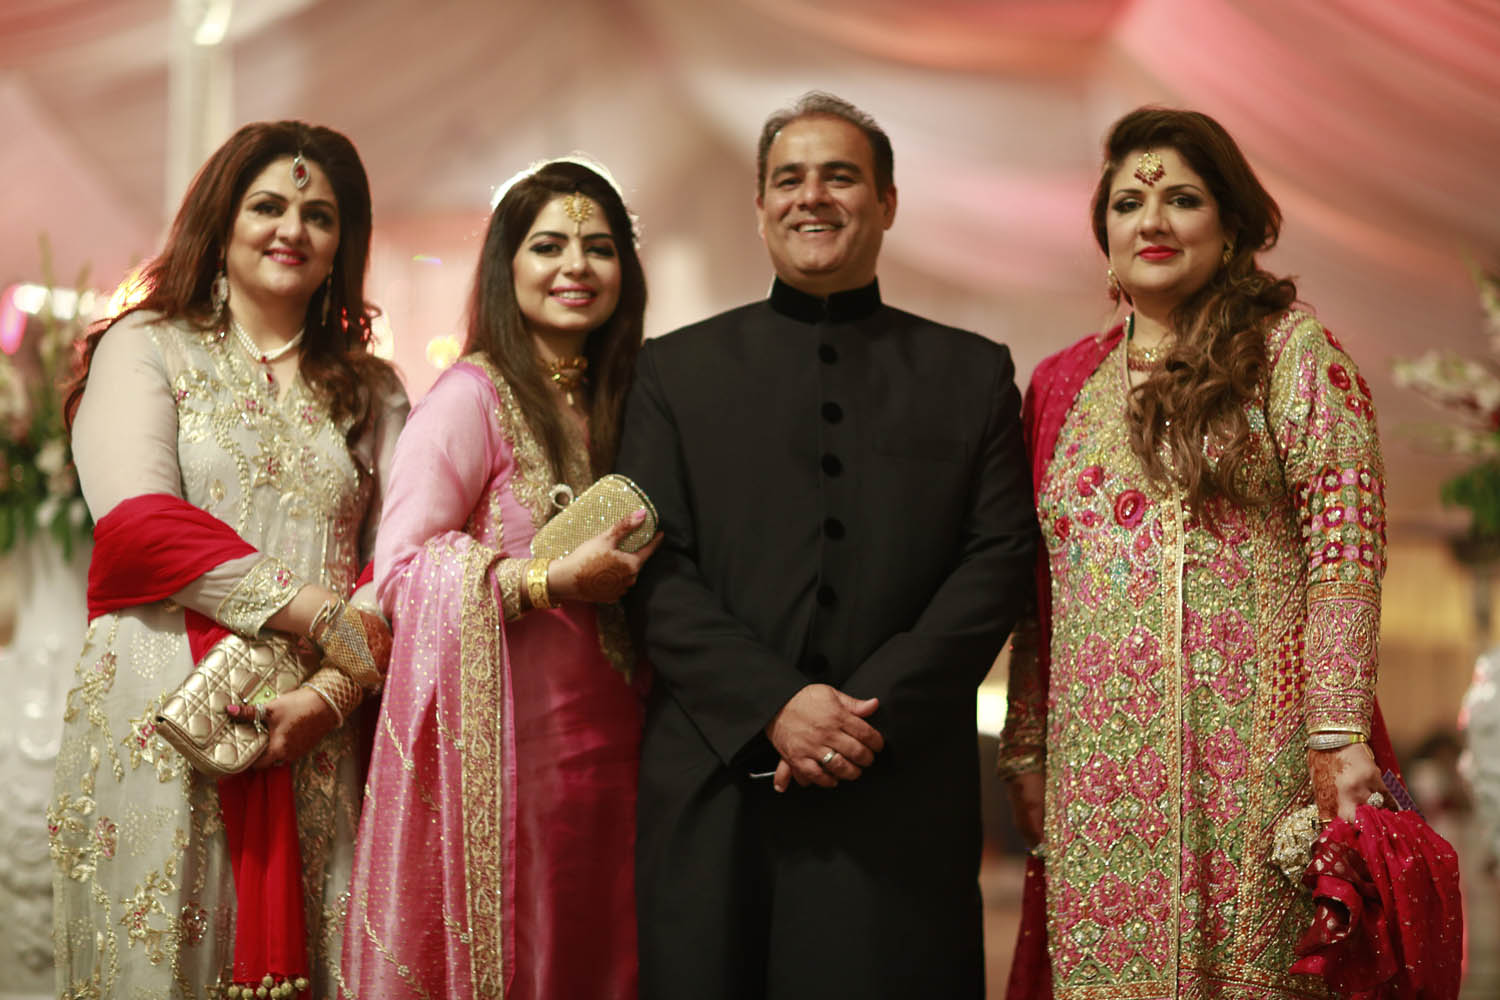 Ayesha,Mariam, Siddique and Fatima